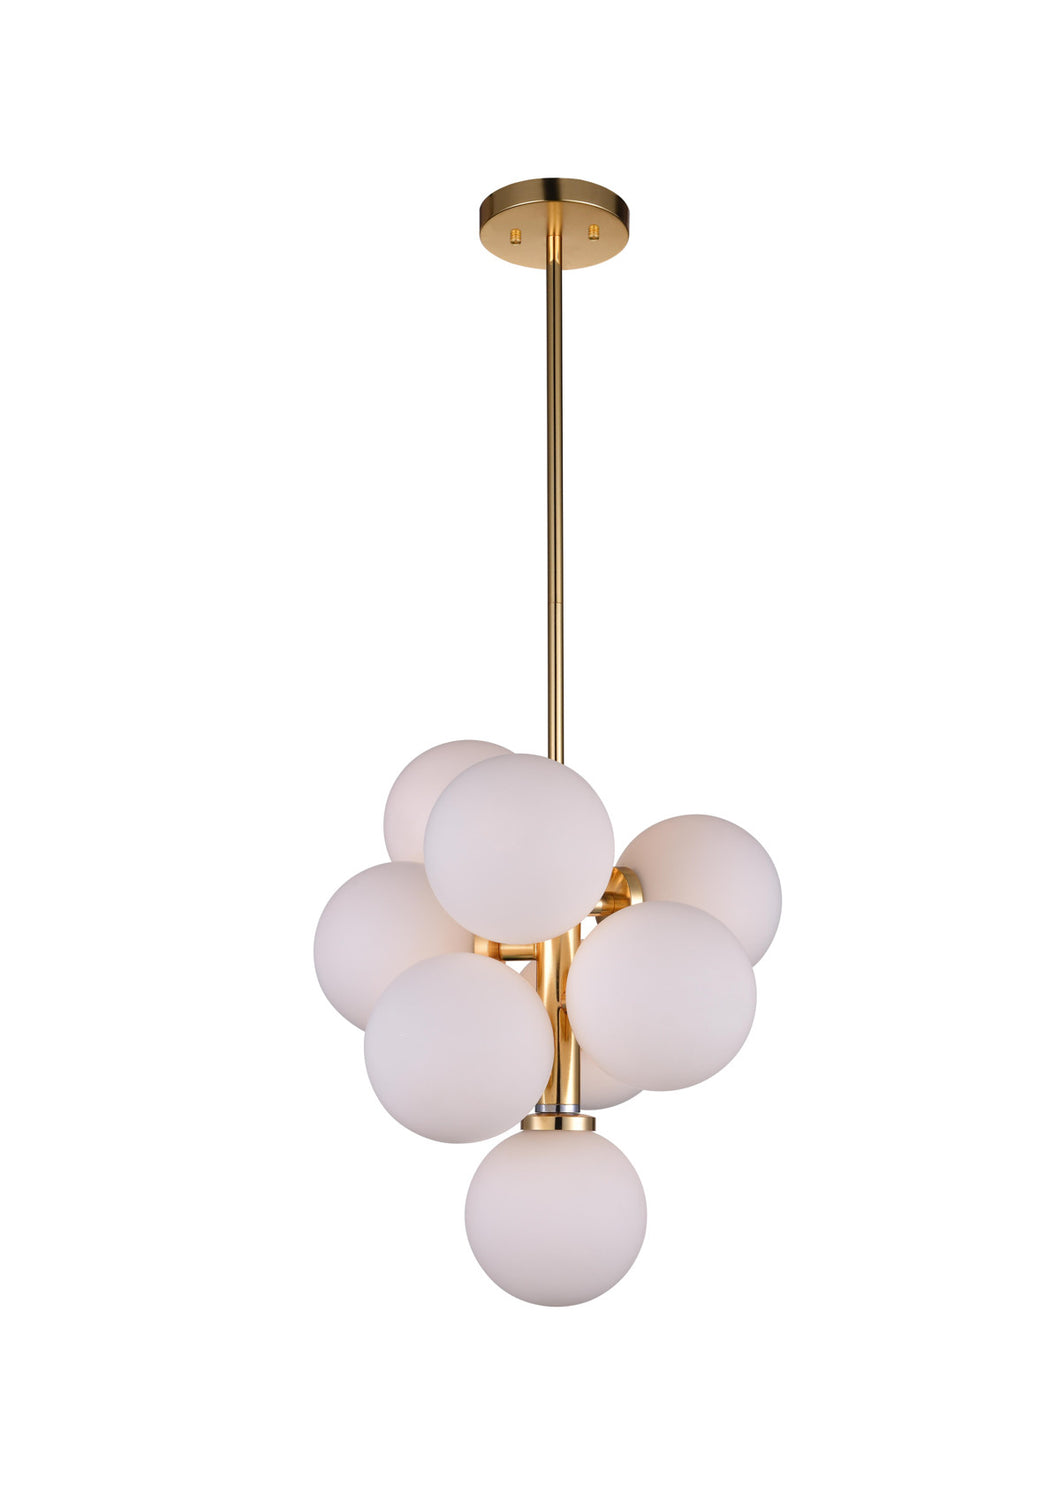 8 Light  Pendant with Satin Gold finish